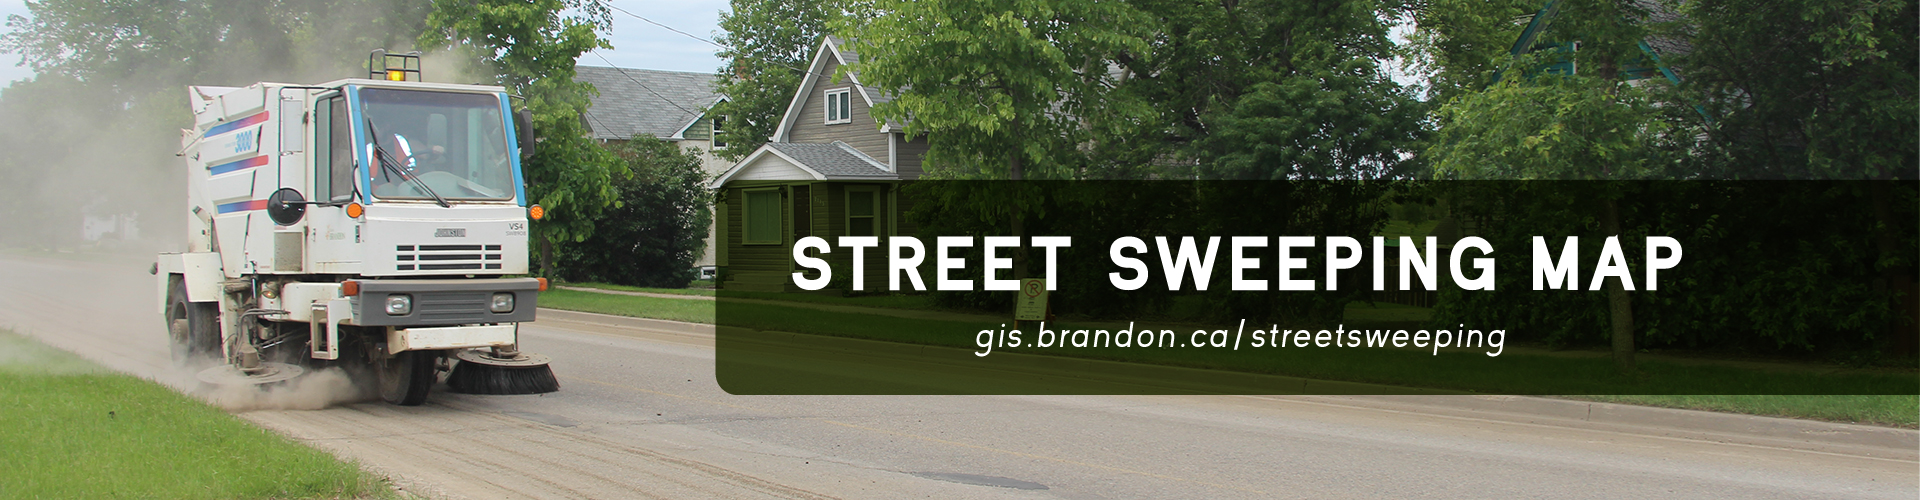 Street Sweeping Banner